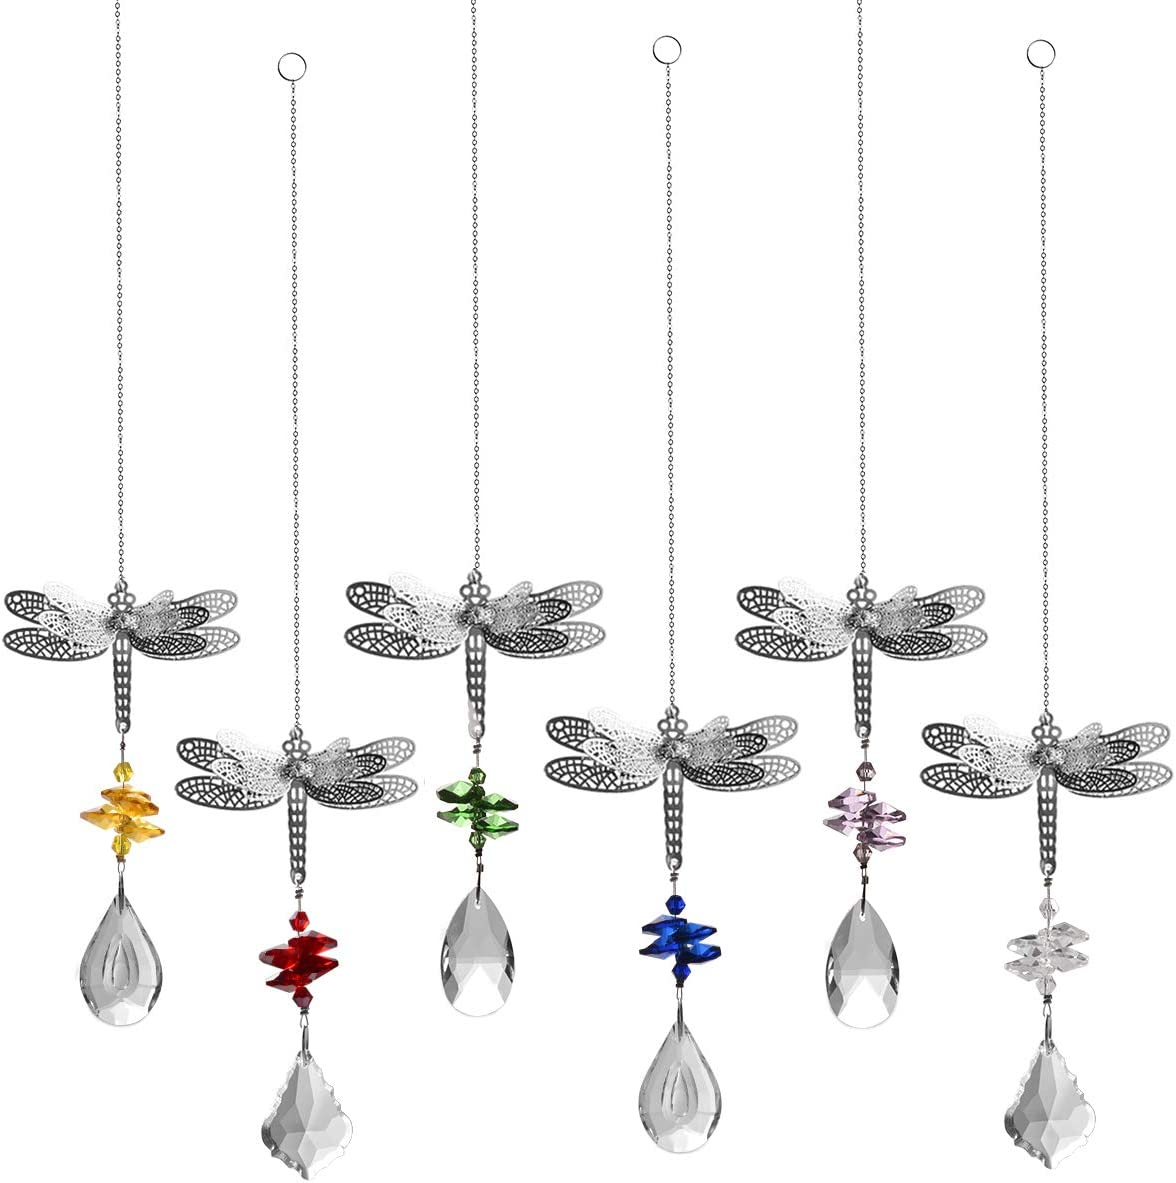 LONGSHENG Dragonfly Crystal Suncatcher Prisms Bead Hanging Crystal for Windows Prisms Suncatcher Garden Wedding Christams Decor Rainbow Maker Mirror Suncatcher,Set of 6